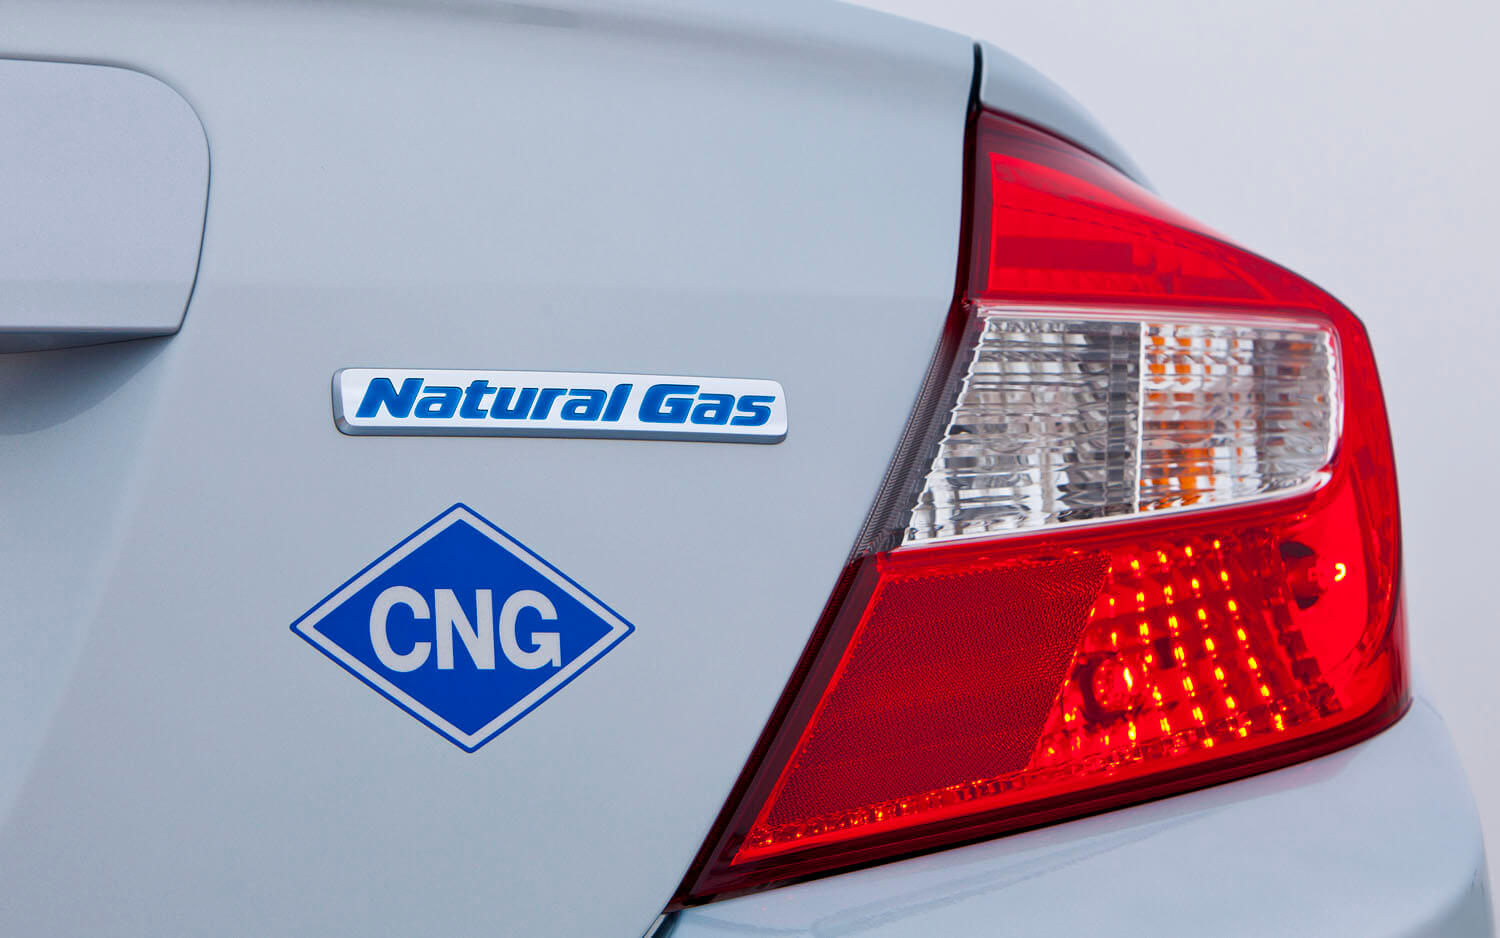 Will Natural Gas Overtake the Biofuel Car?